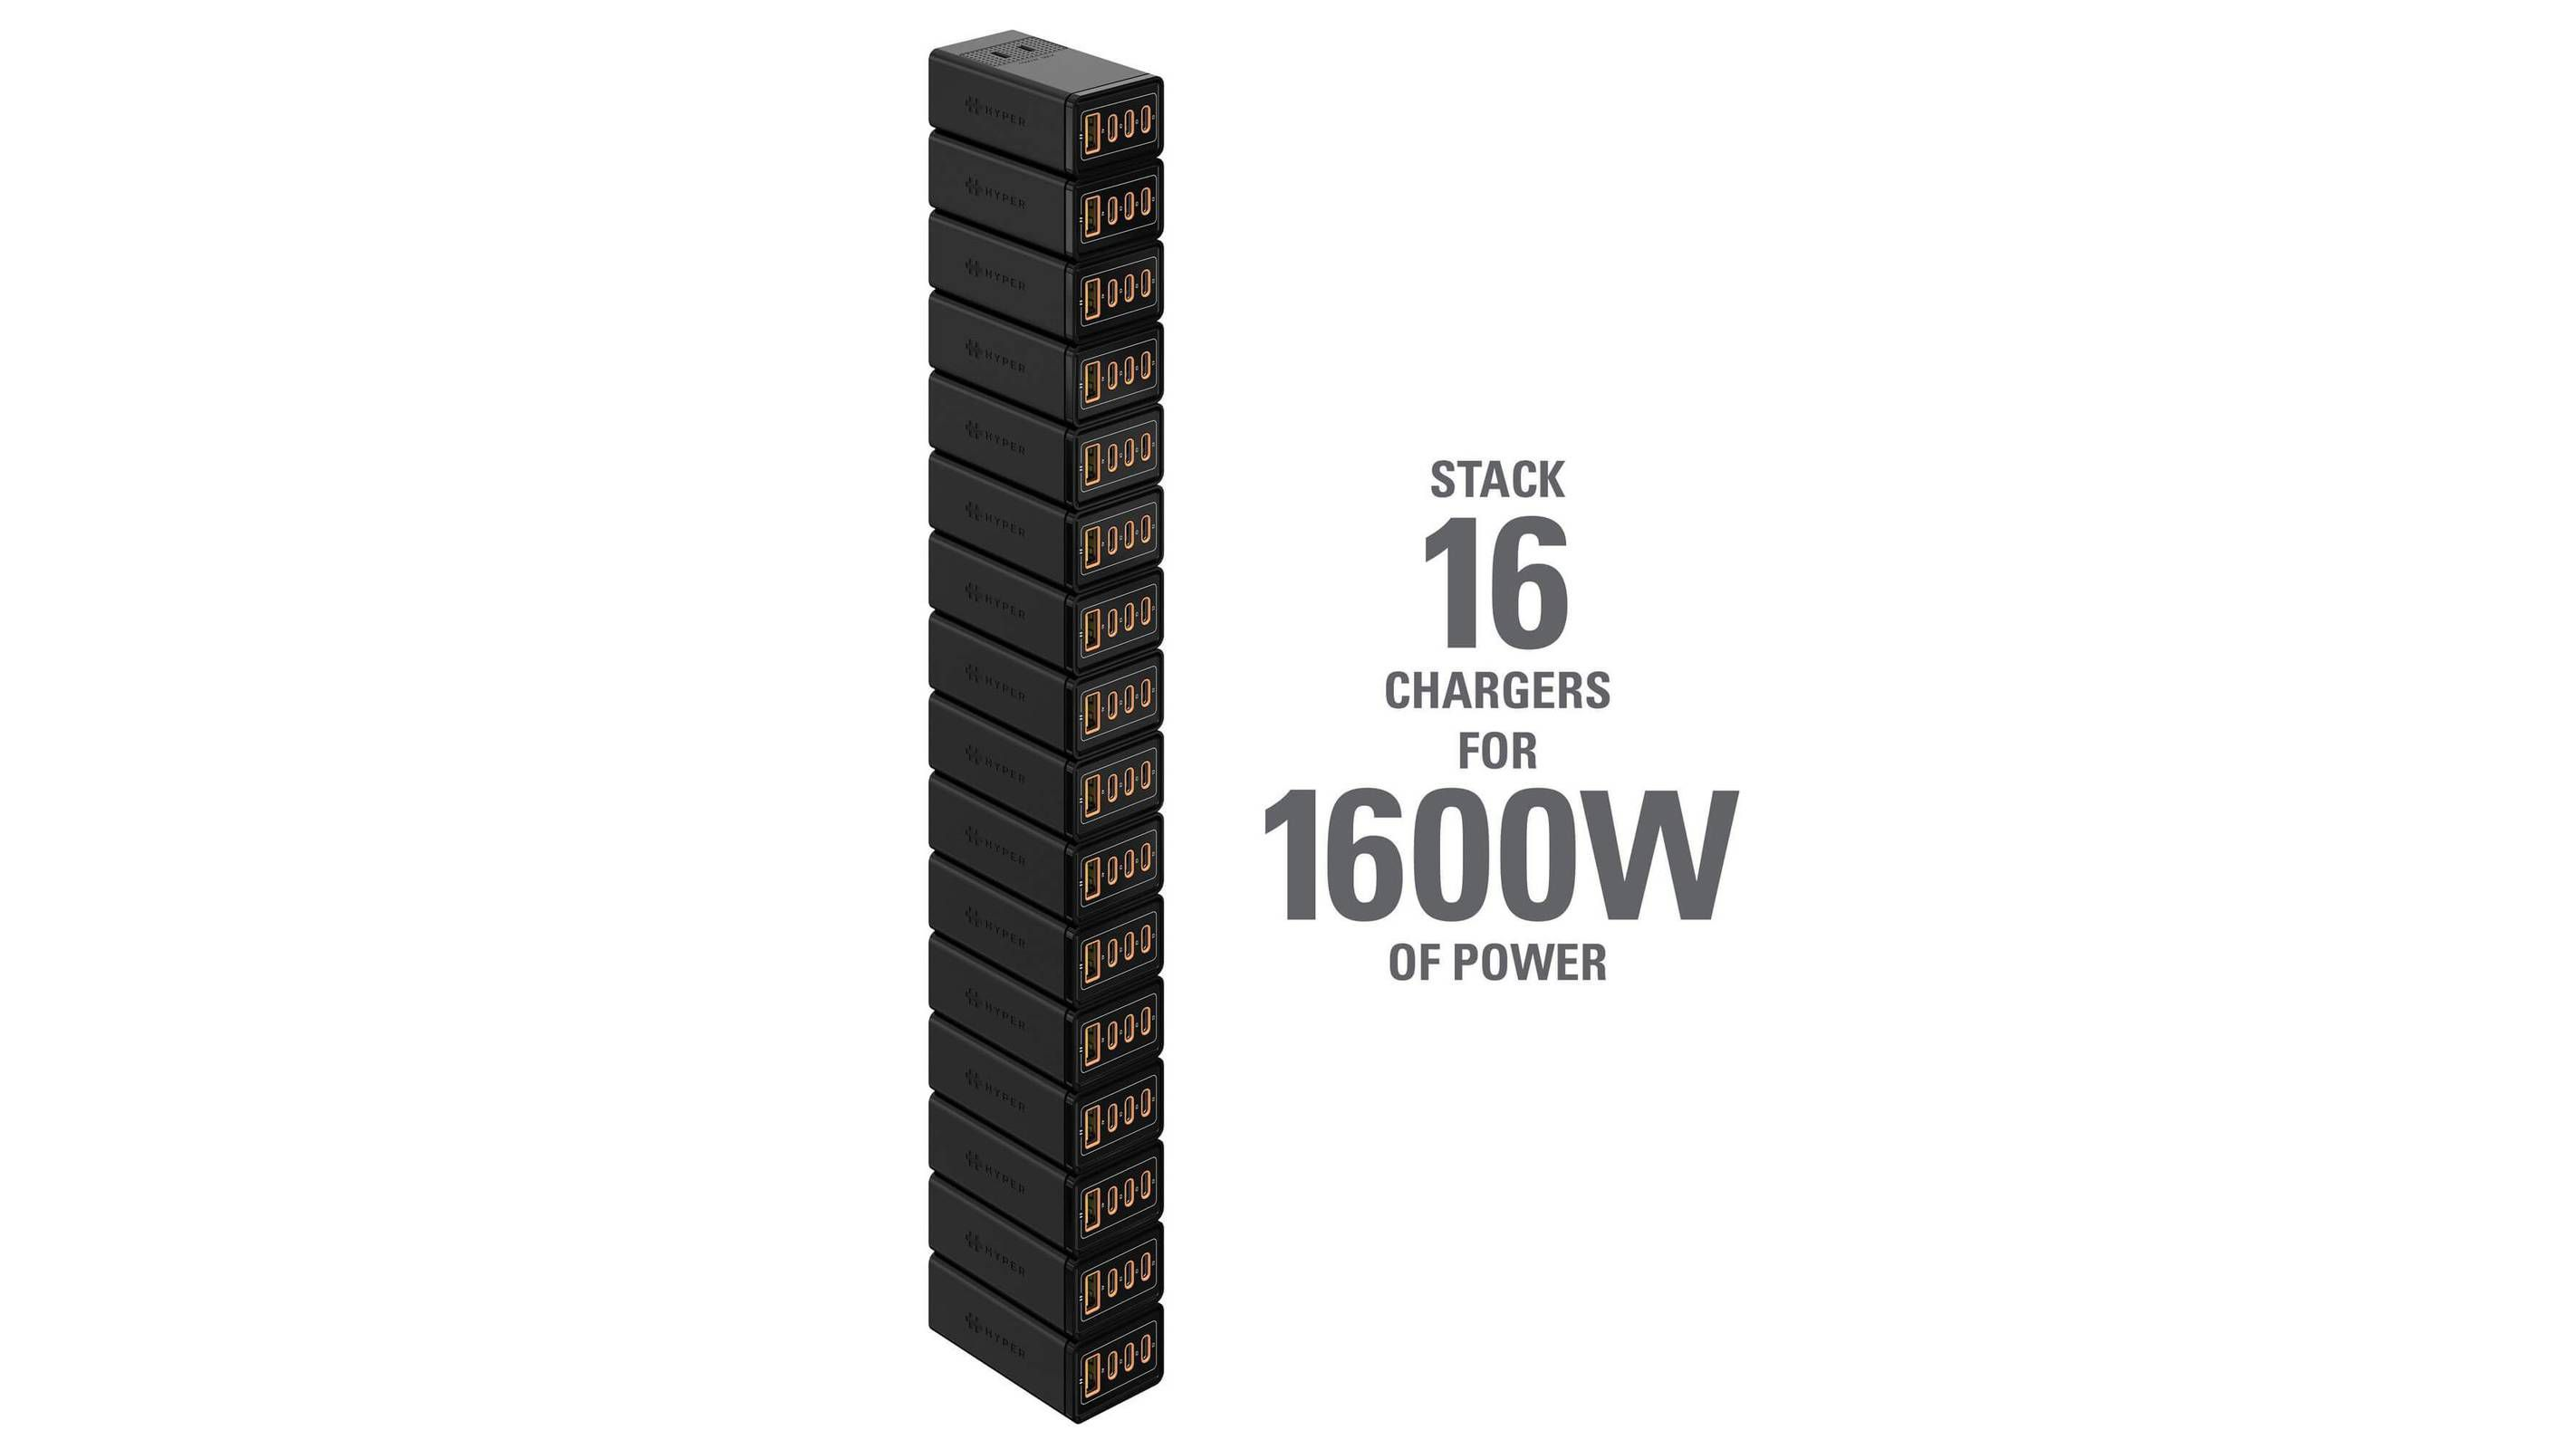 Hyper Releases Stackable GaN Chargers With Up to 1600W of Power From a Single Wall Outlet